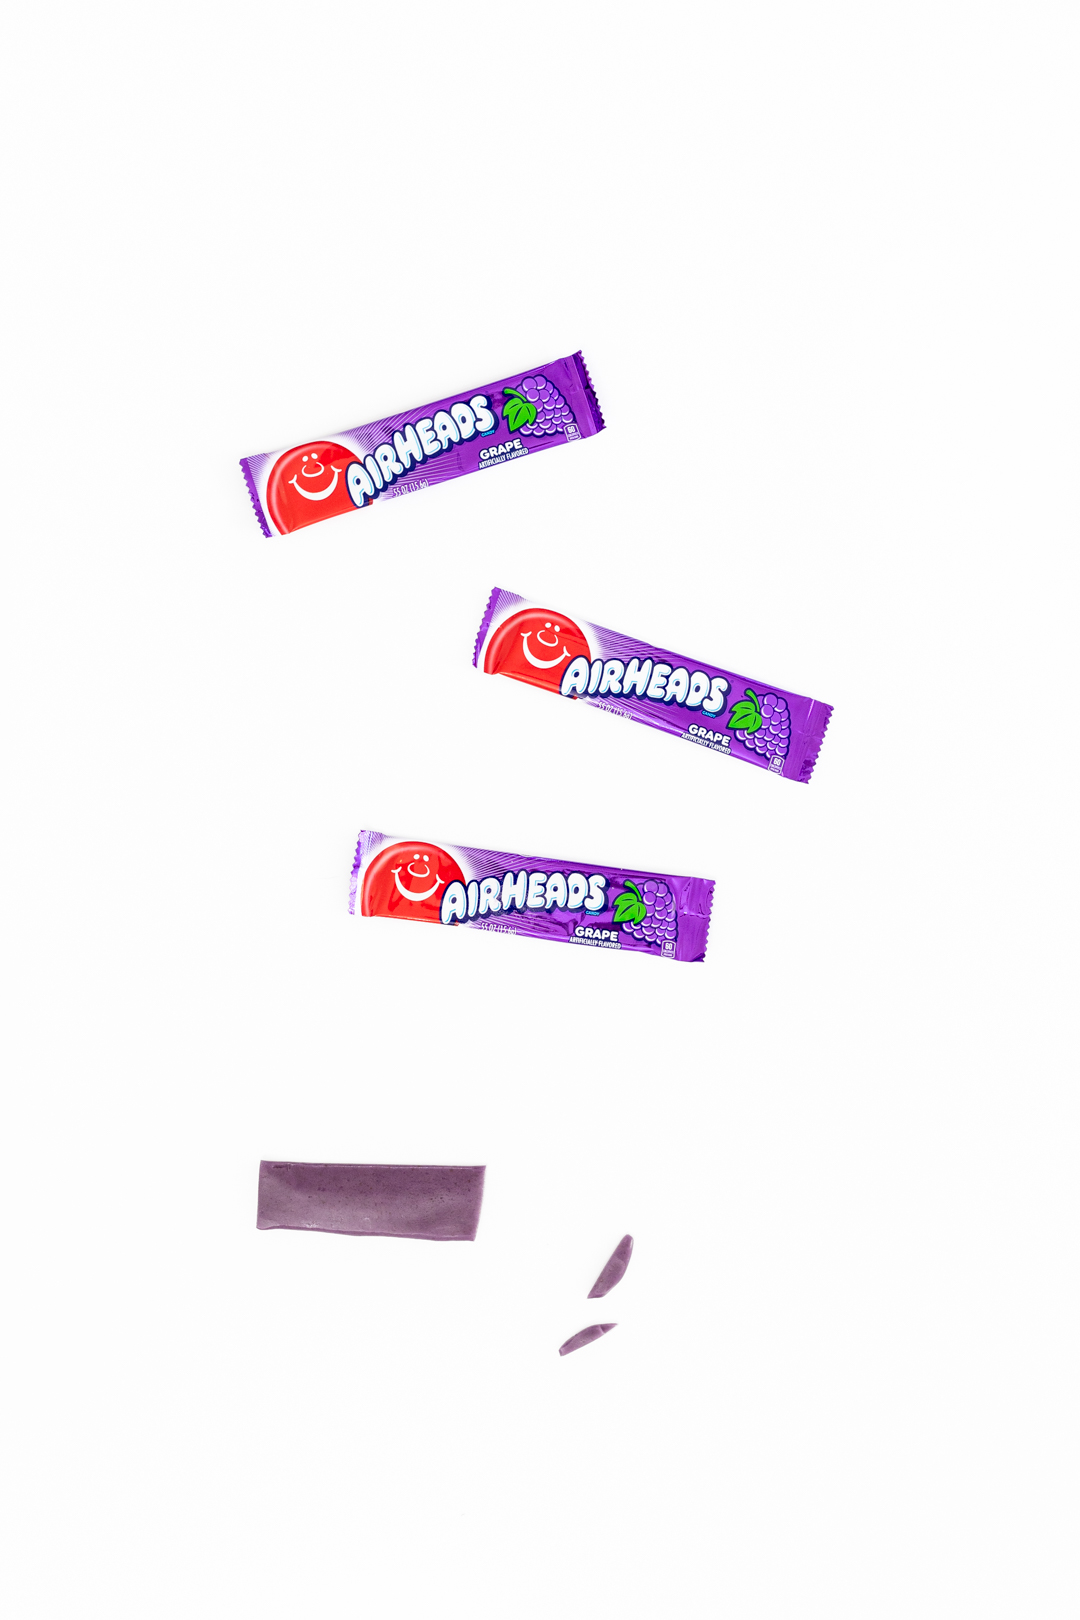 Airheads Grape candy